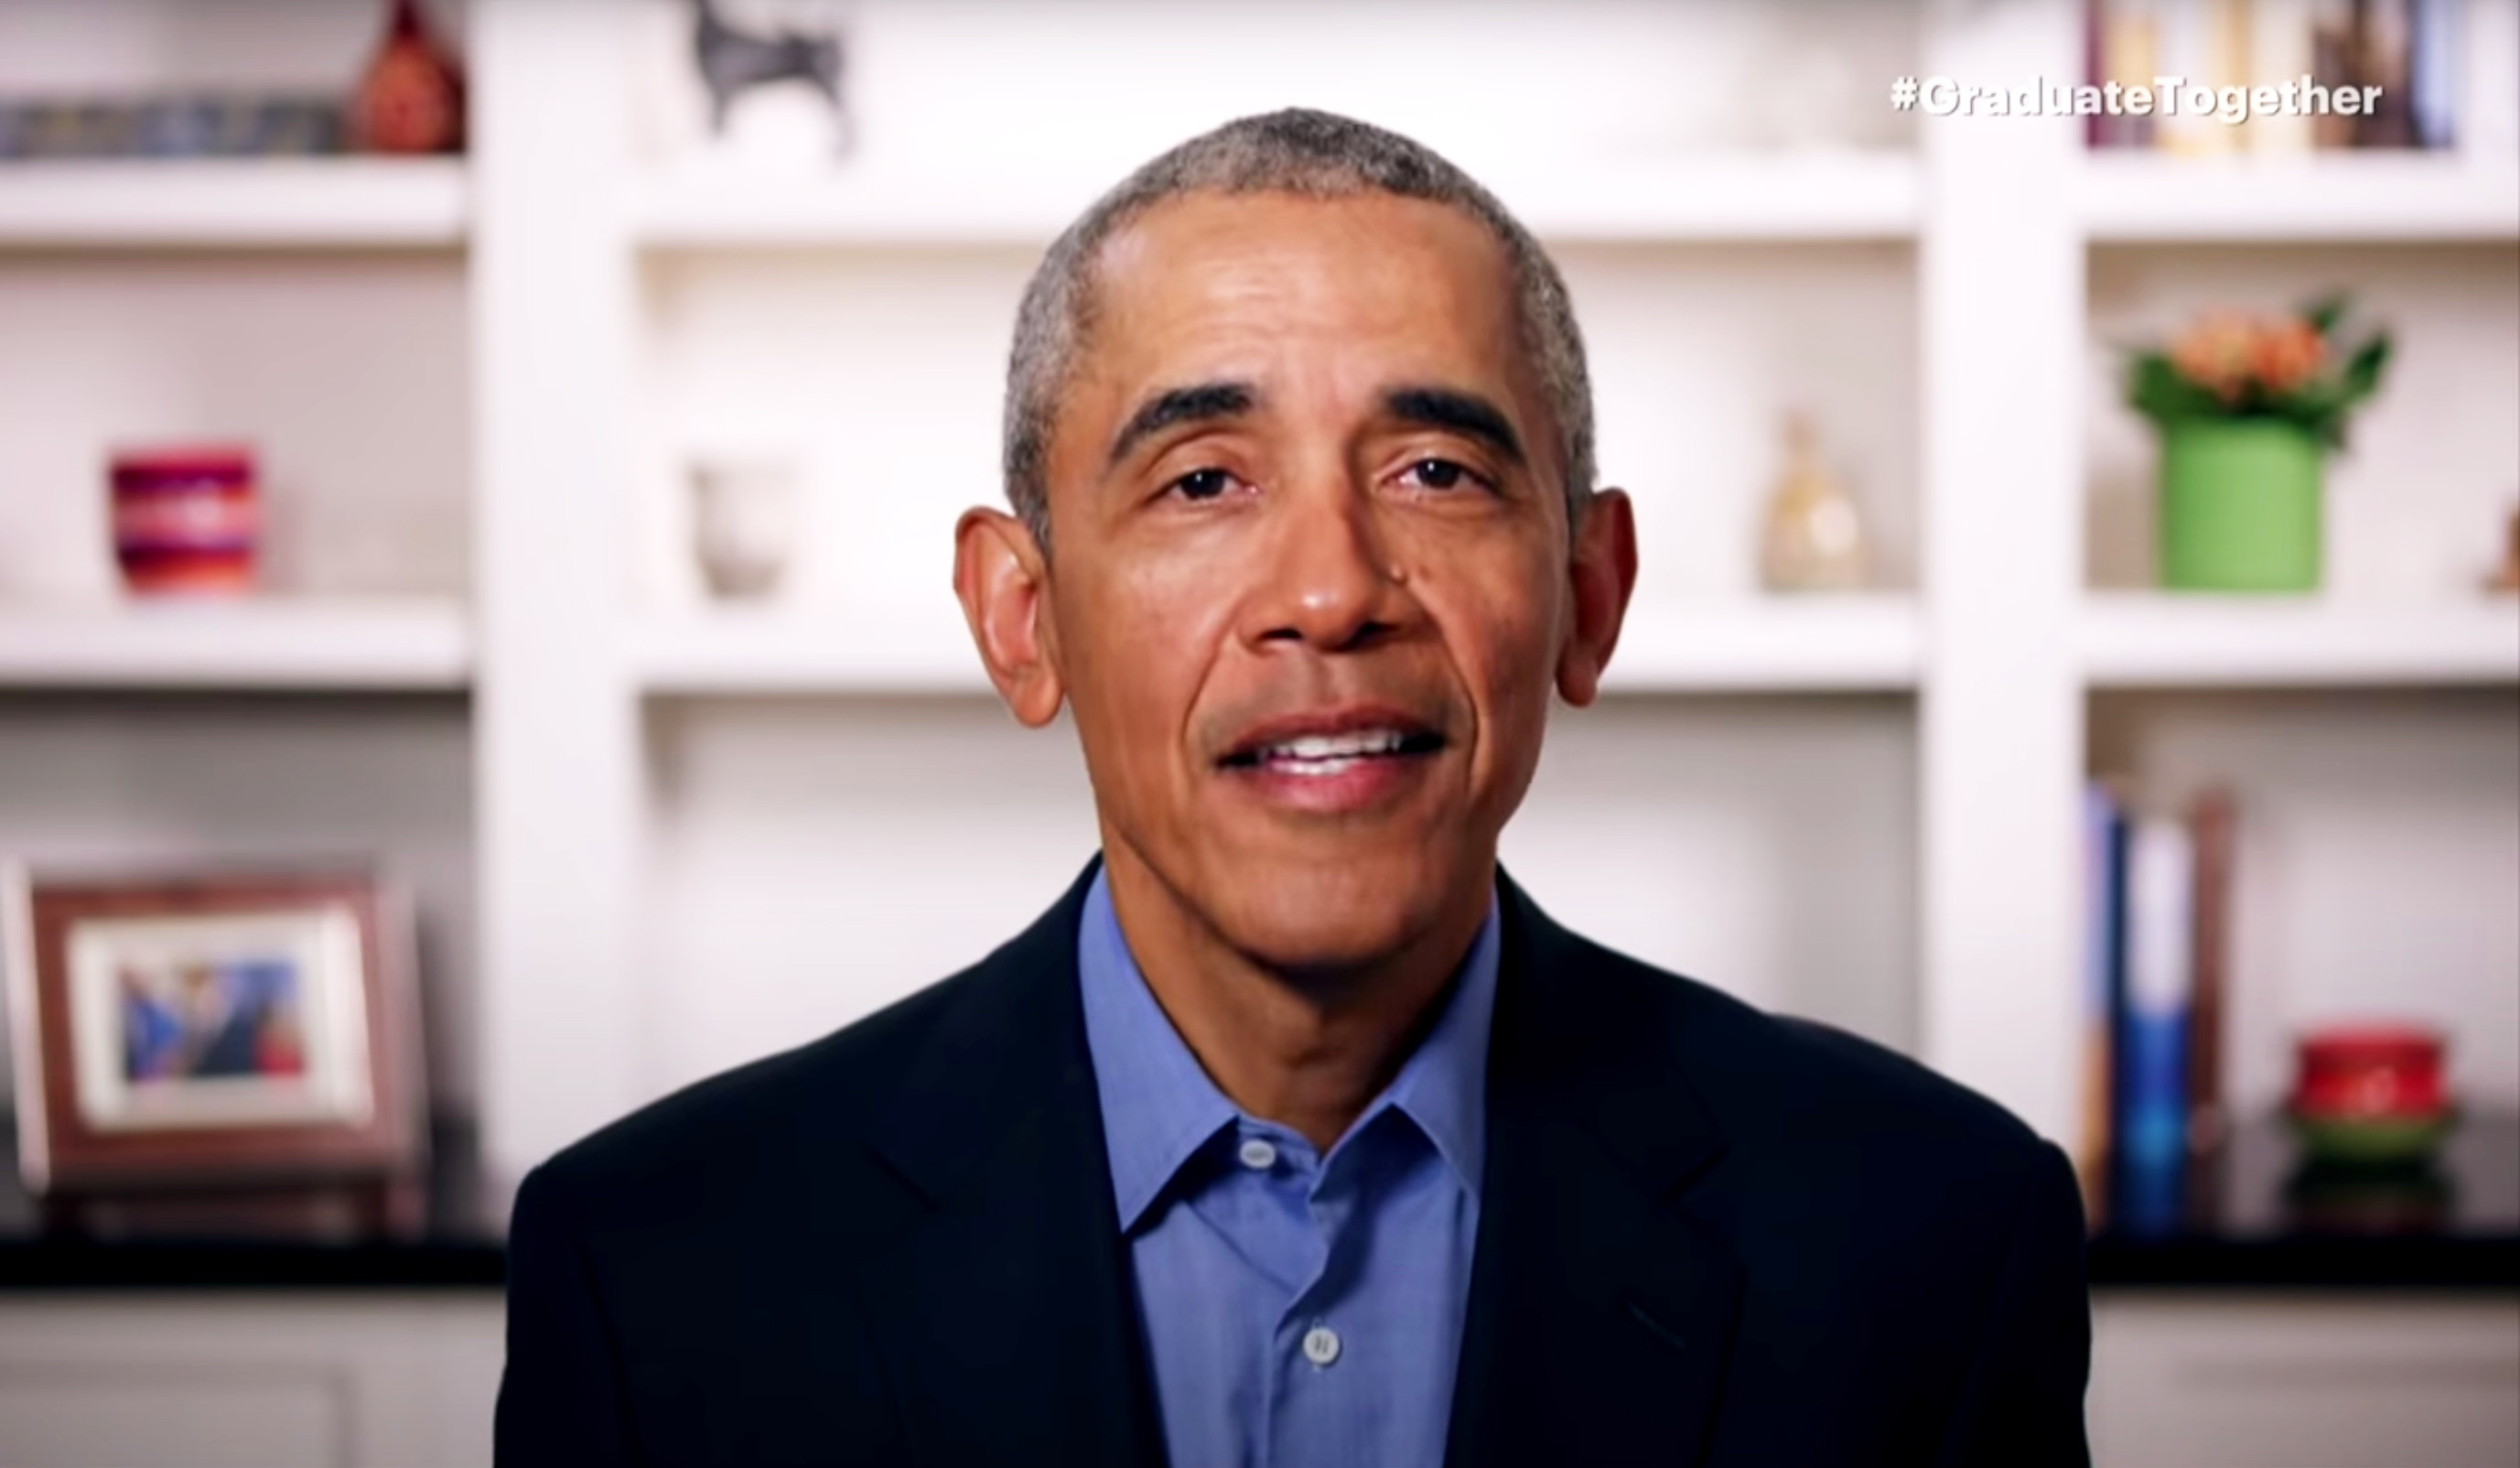 Barack Obama Offers 3 Pieces of Advice to Class of 2020 in 'Graduate Together'